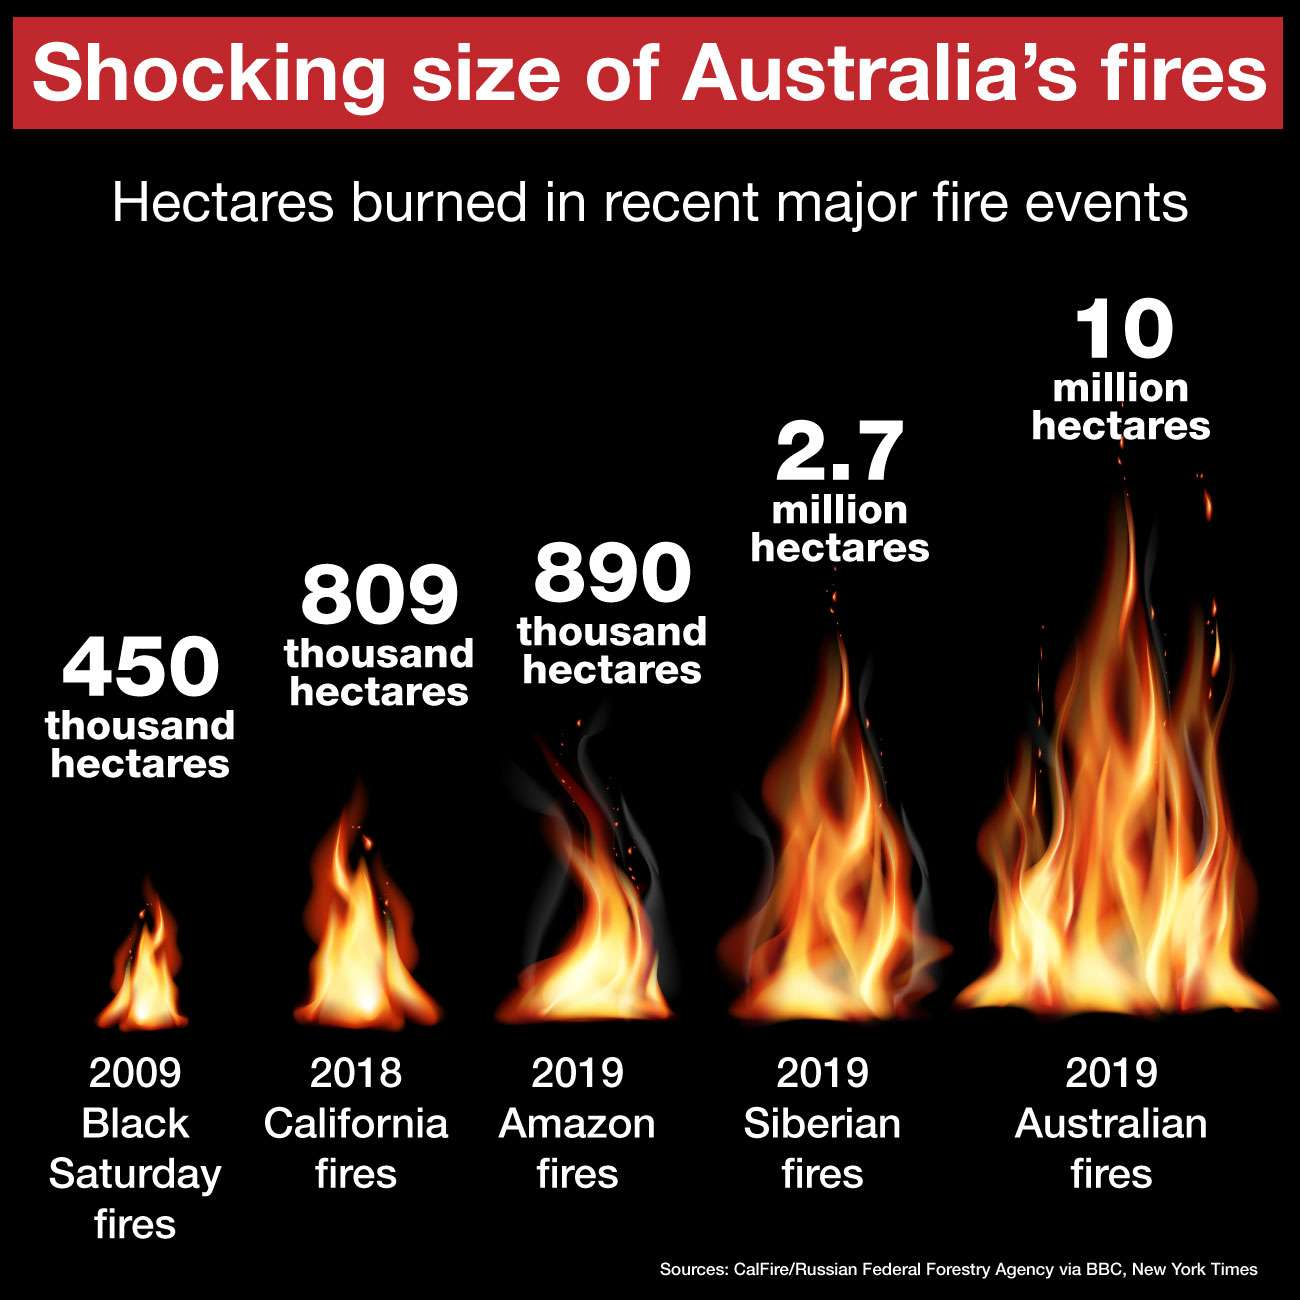 The shocking scale of Australia's fires